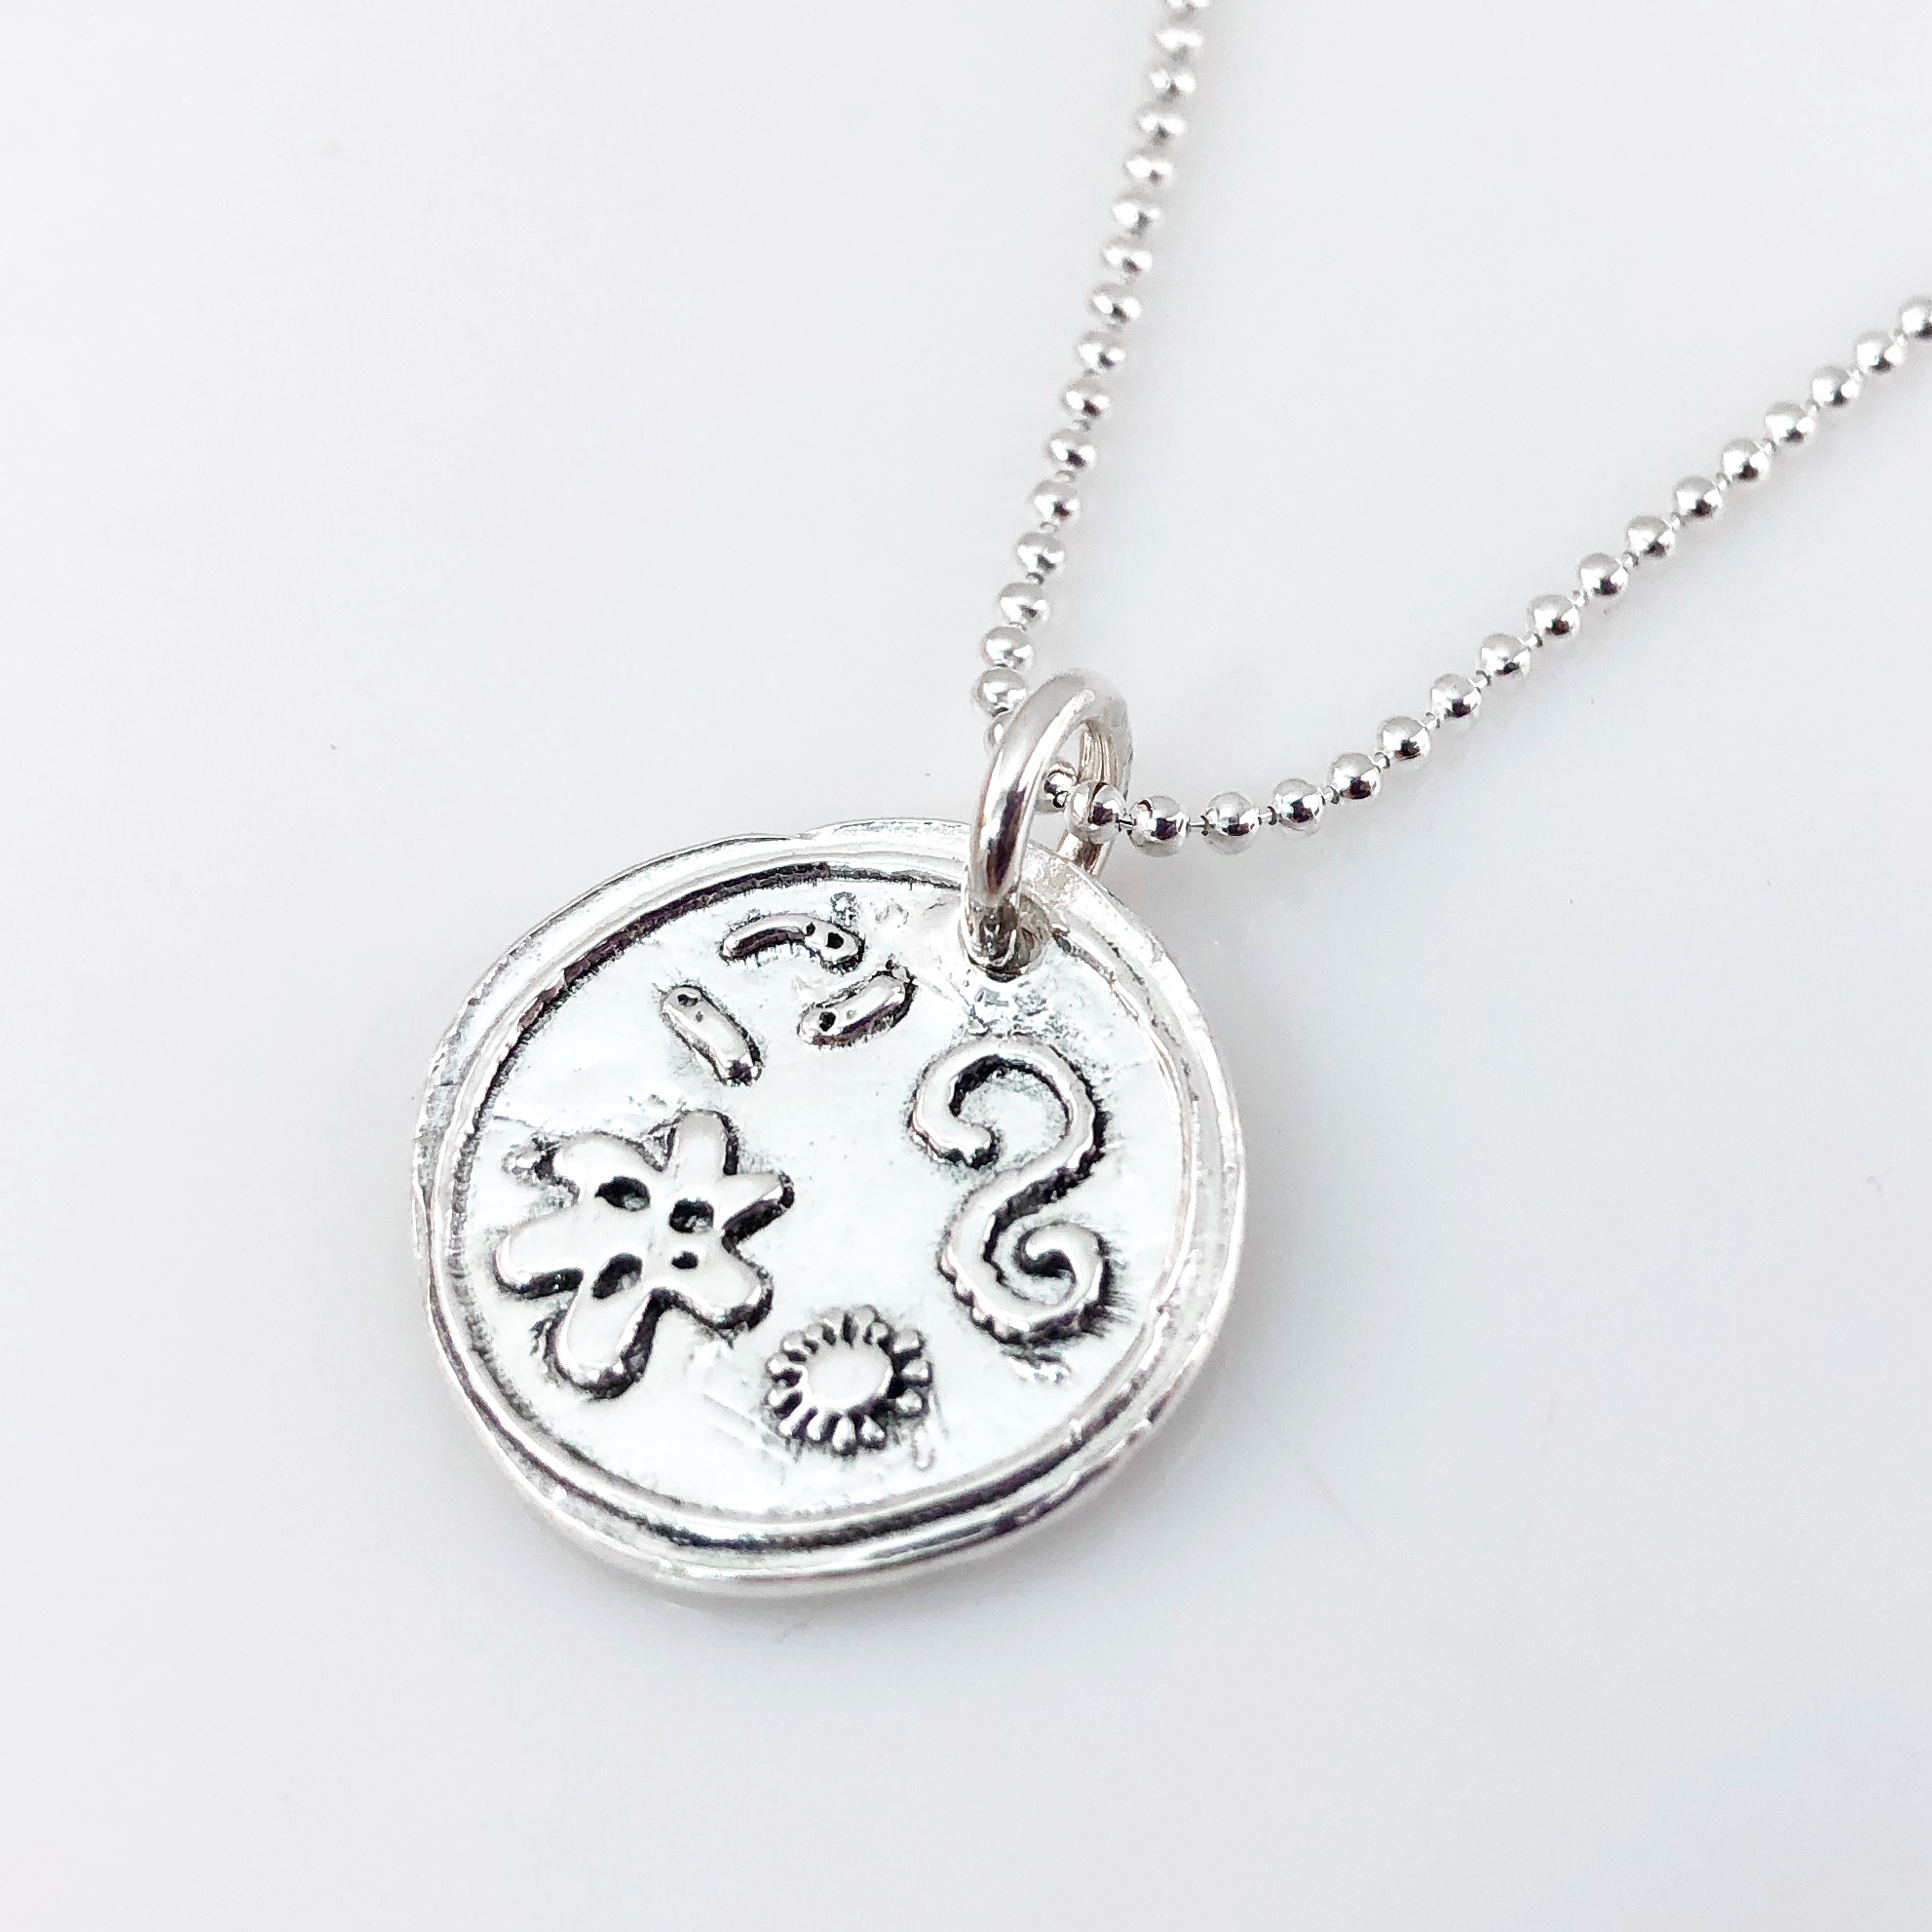 Petri Dish with Bacteria Wax Seal Necklace